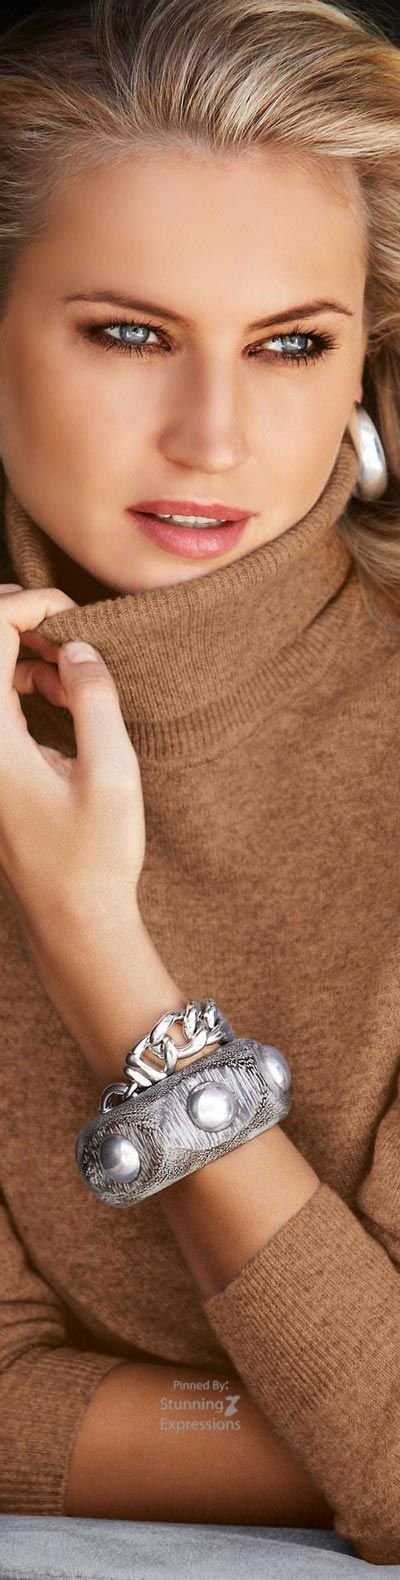 Sweater weather. #sweaters #knits http://bellanblue.com